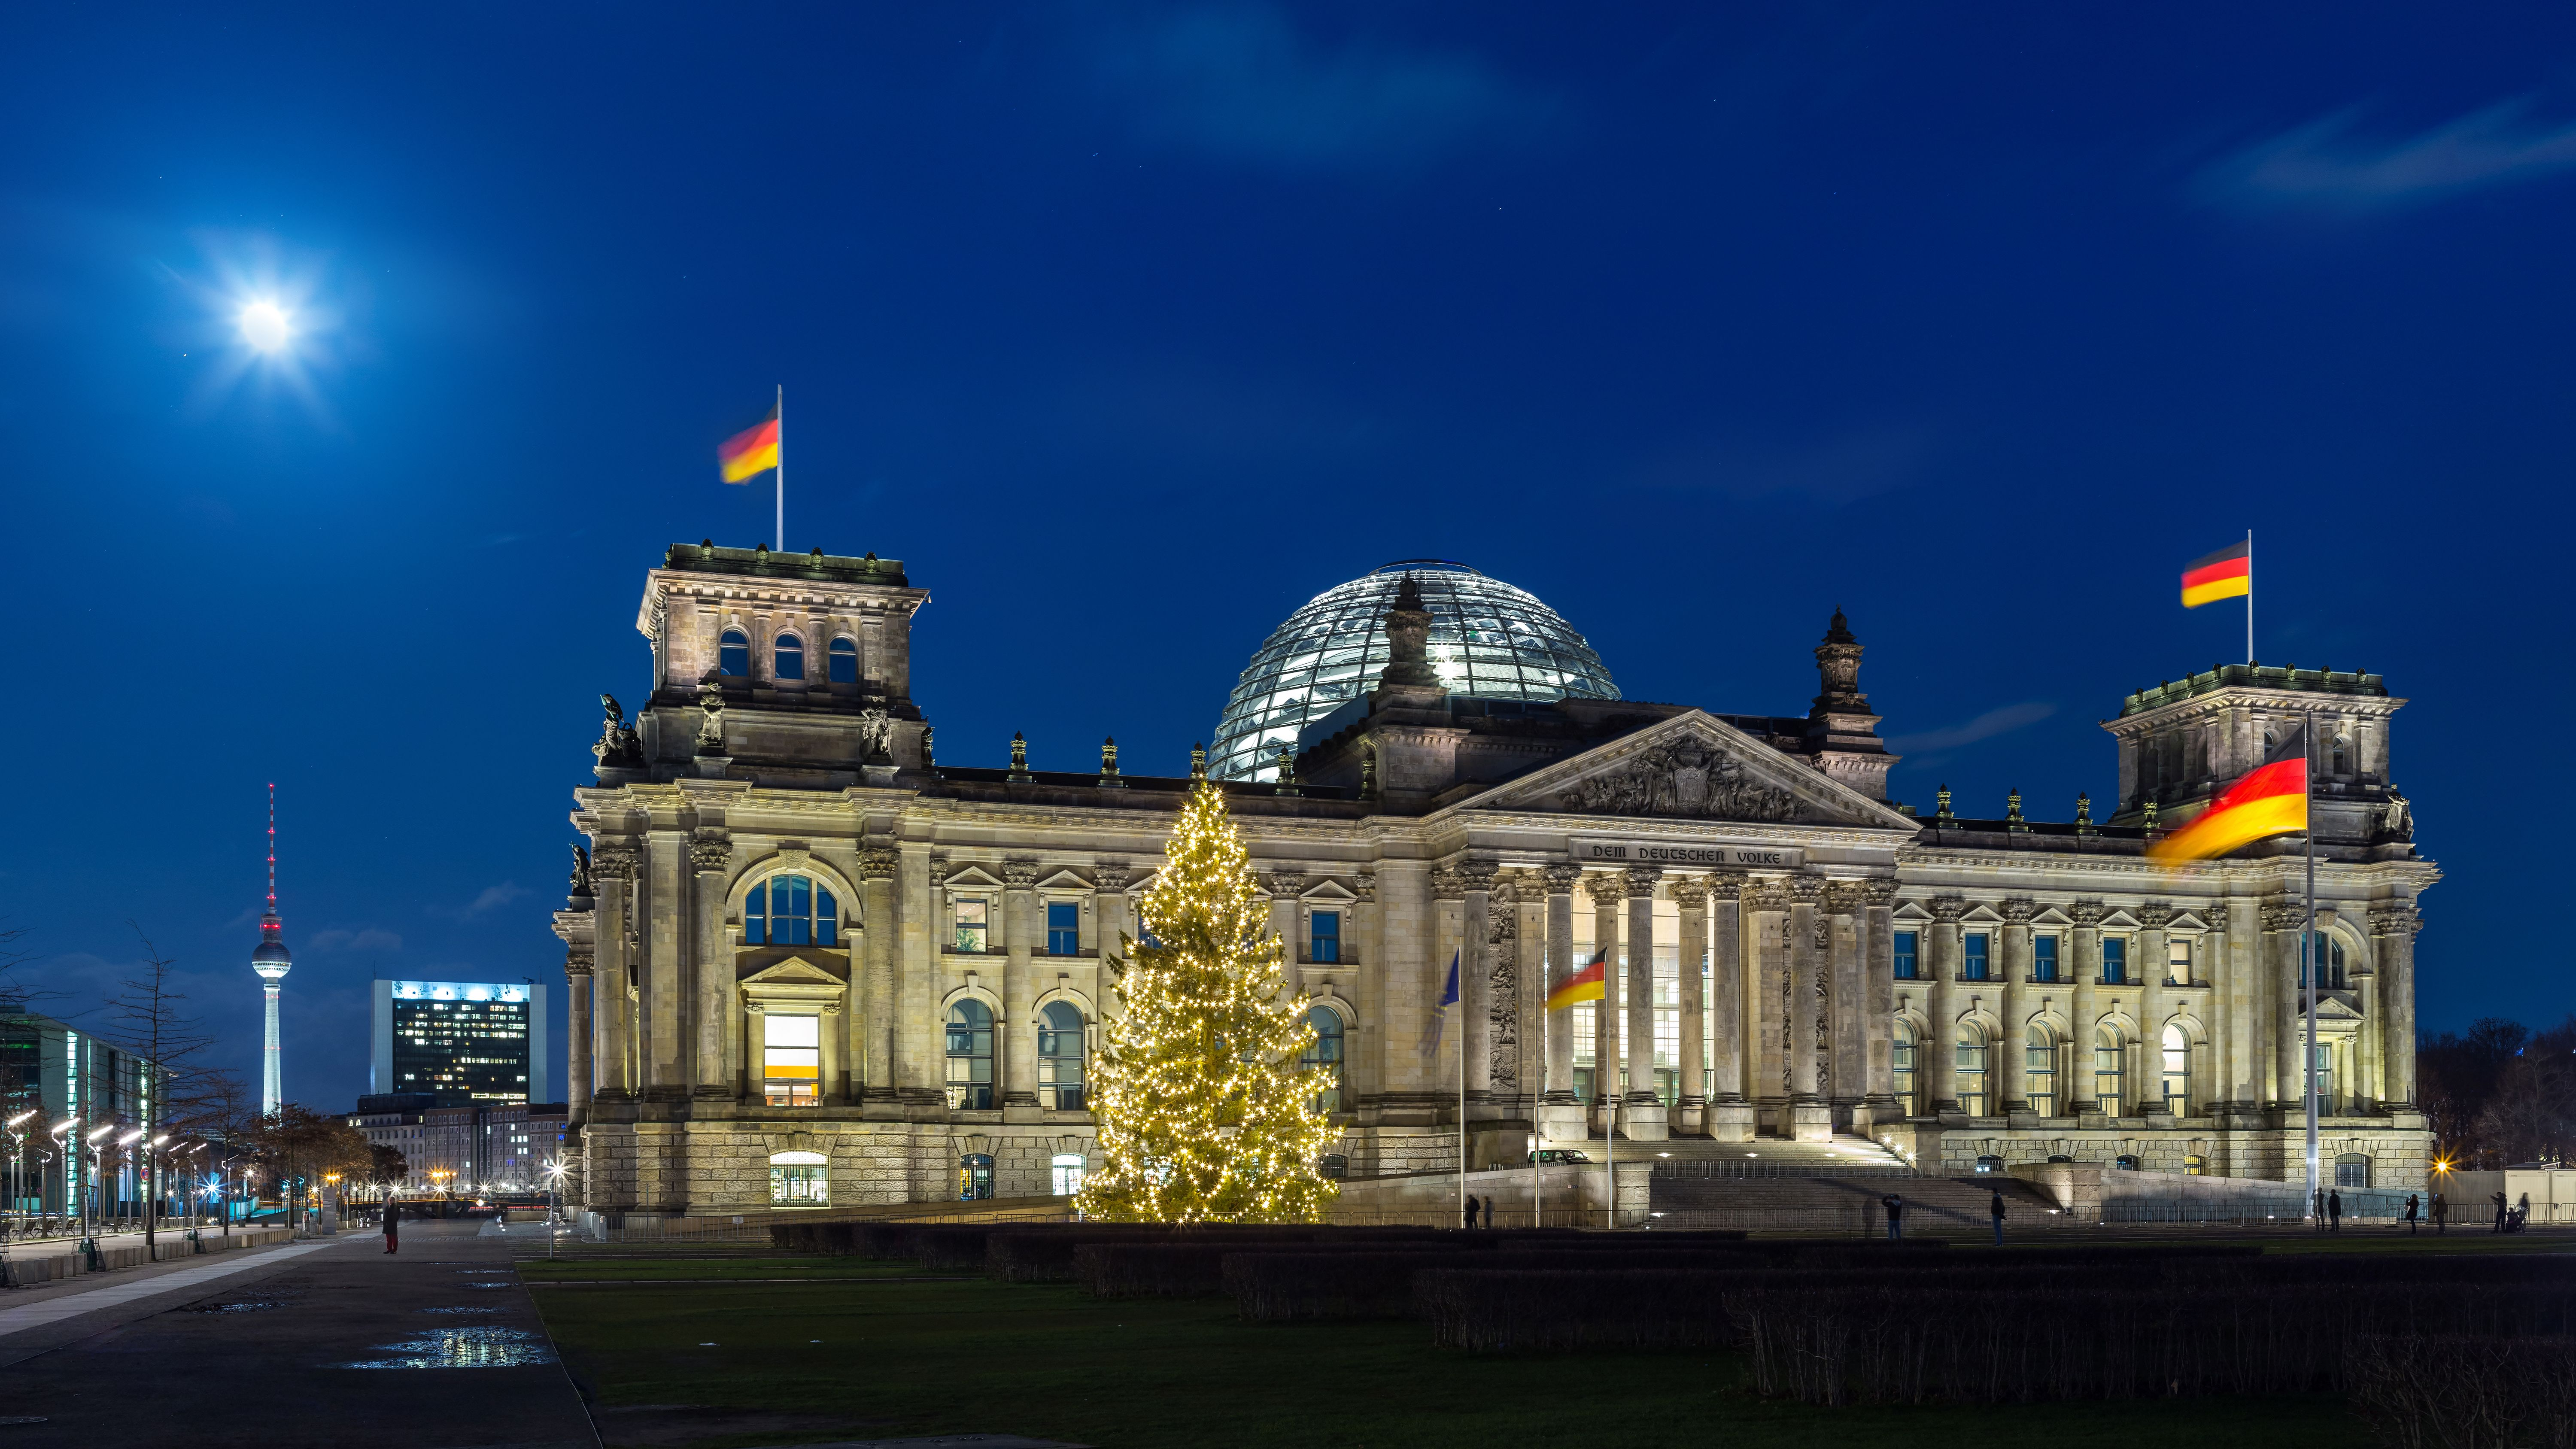 The Reichstag Building In Berlin At Night With A Christmas Tree In Front Of It At The Left Of The Reichstag The International Trade Centre Friedrichstr Tasarim